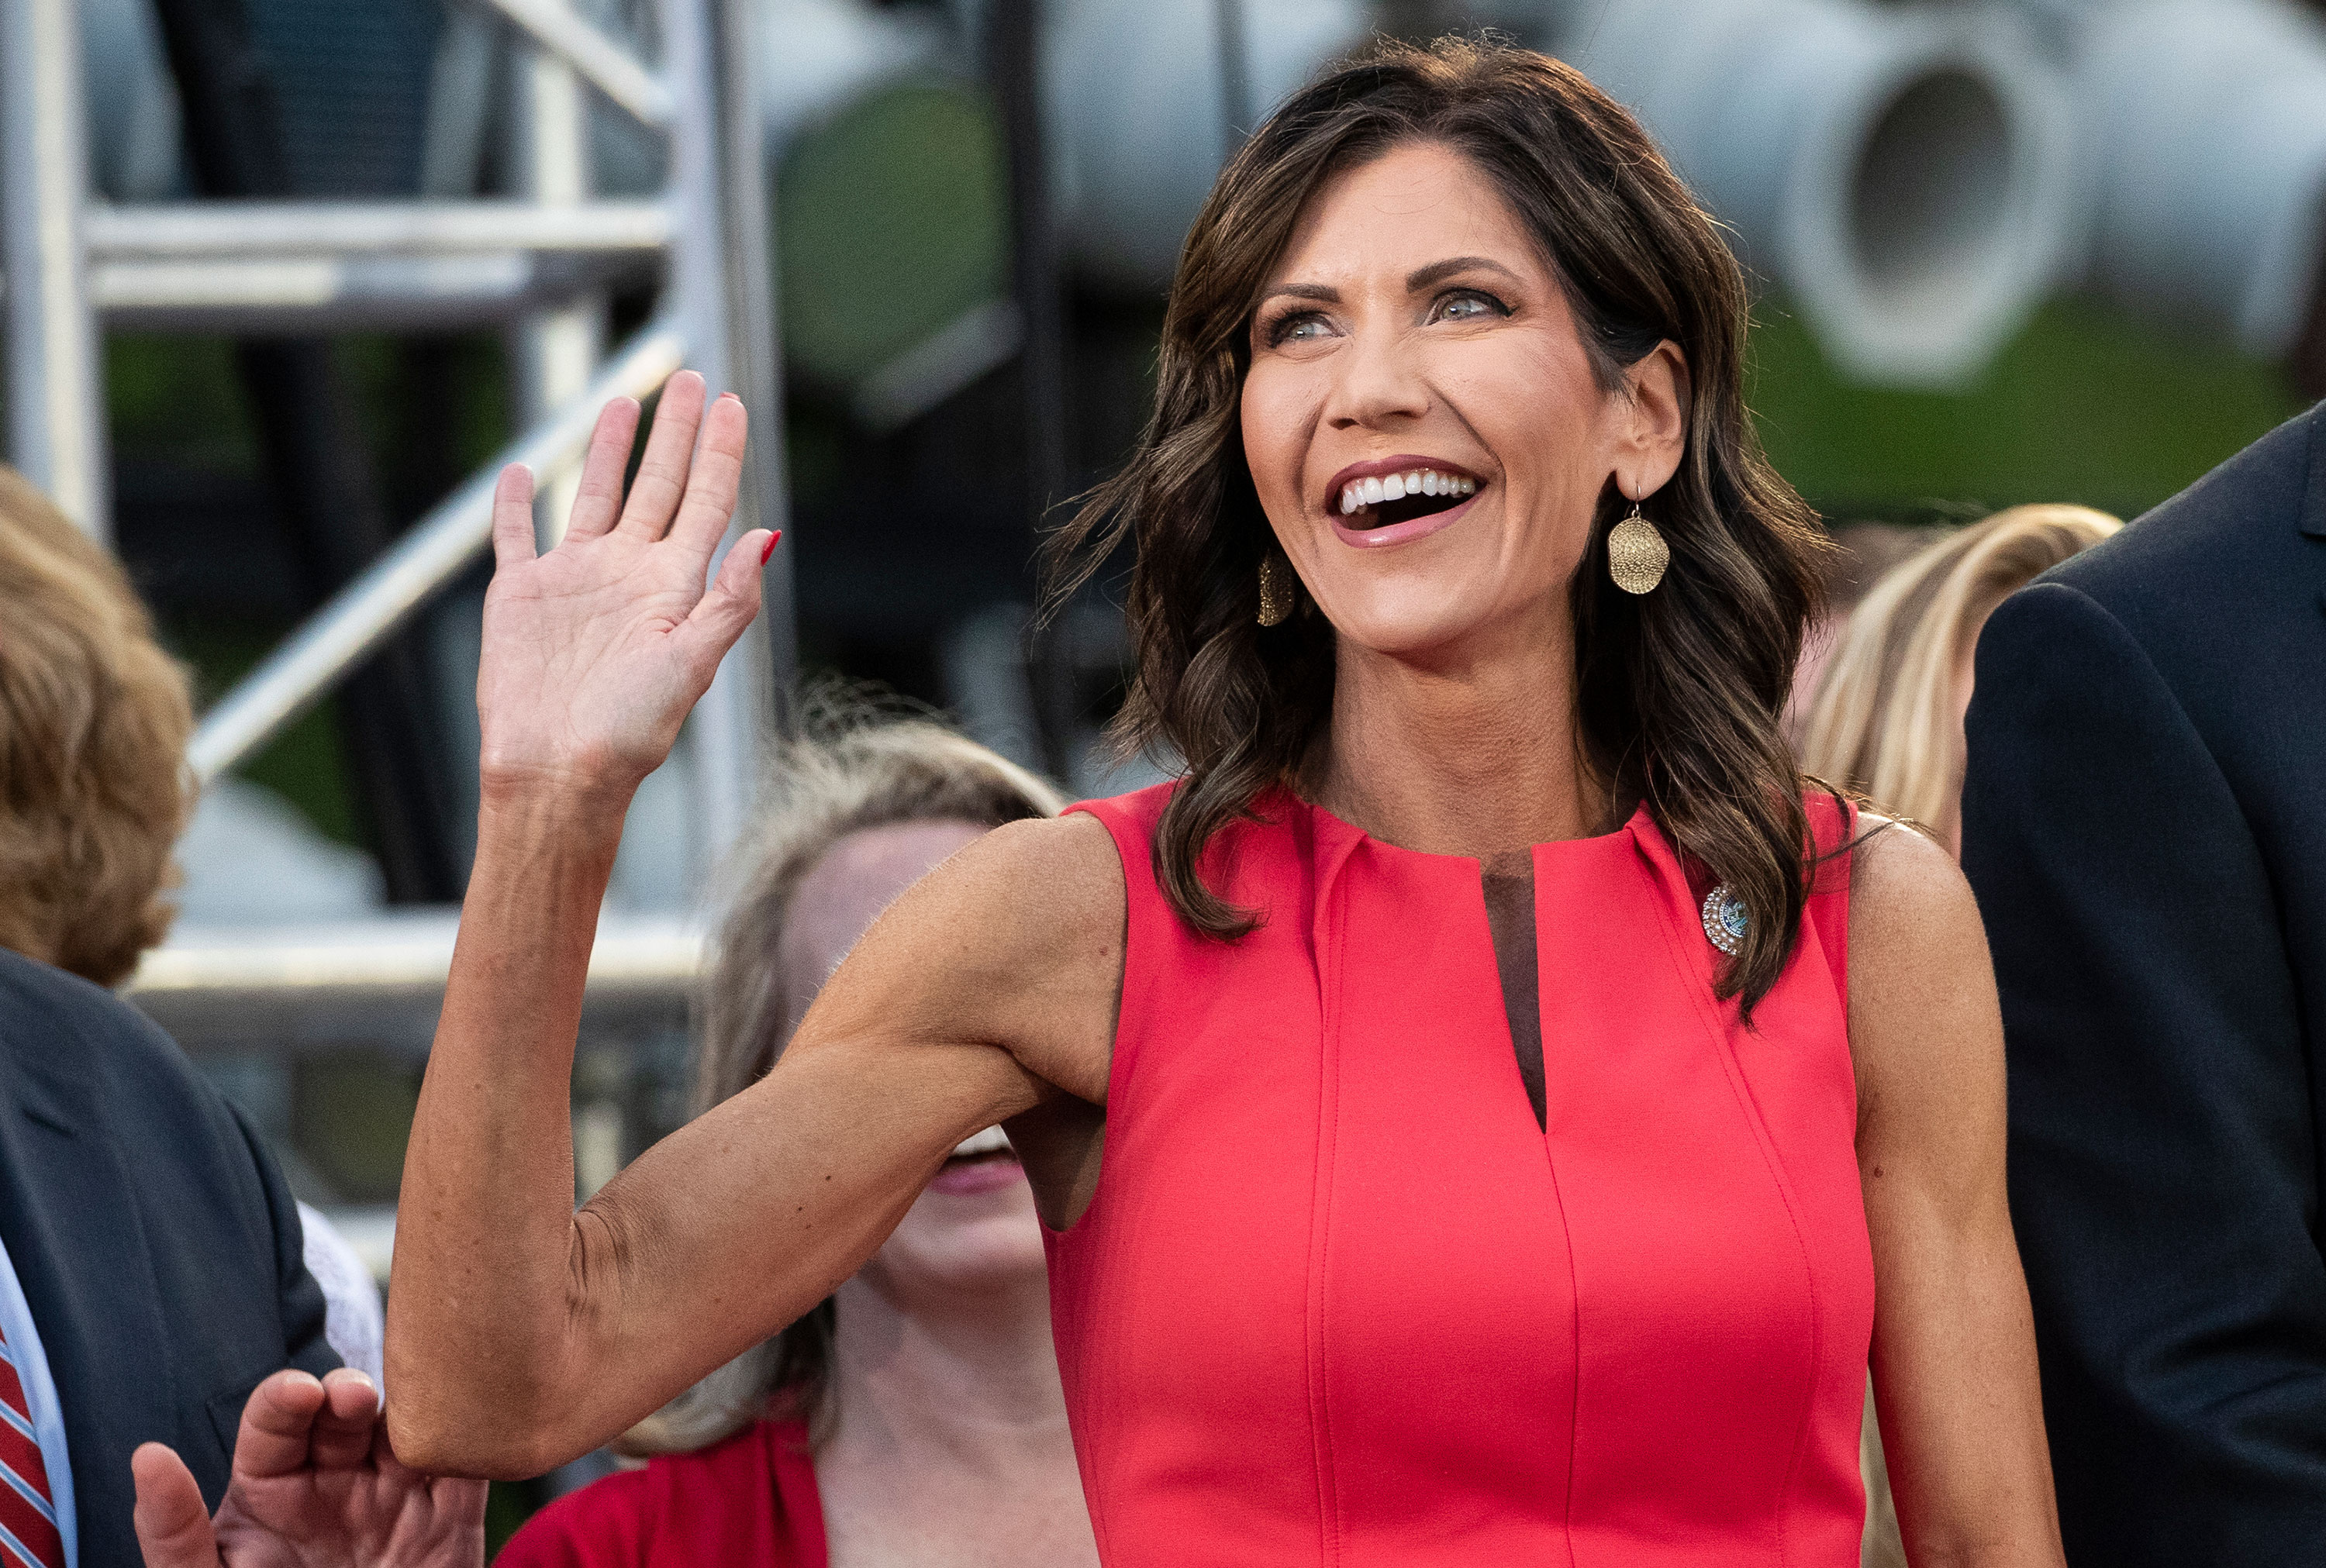 South Dakota Gov. Kristi Noem waves to supporters at Mount Rushmore National Memorial, FridaJuly 3, 2020, near Keystone, South Dakota.